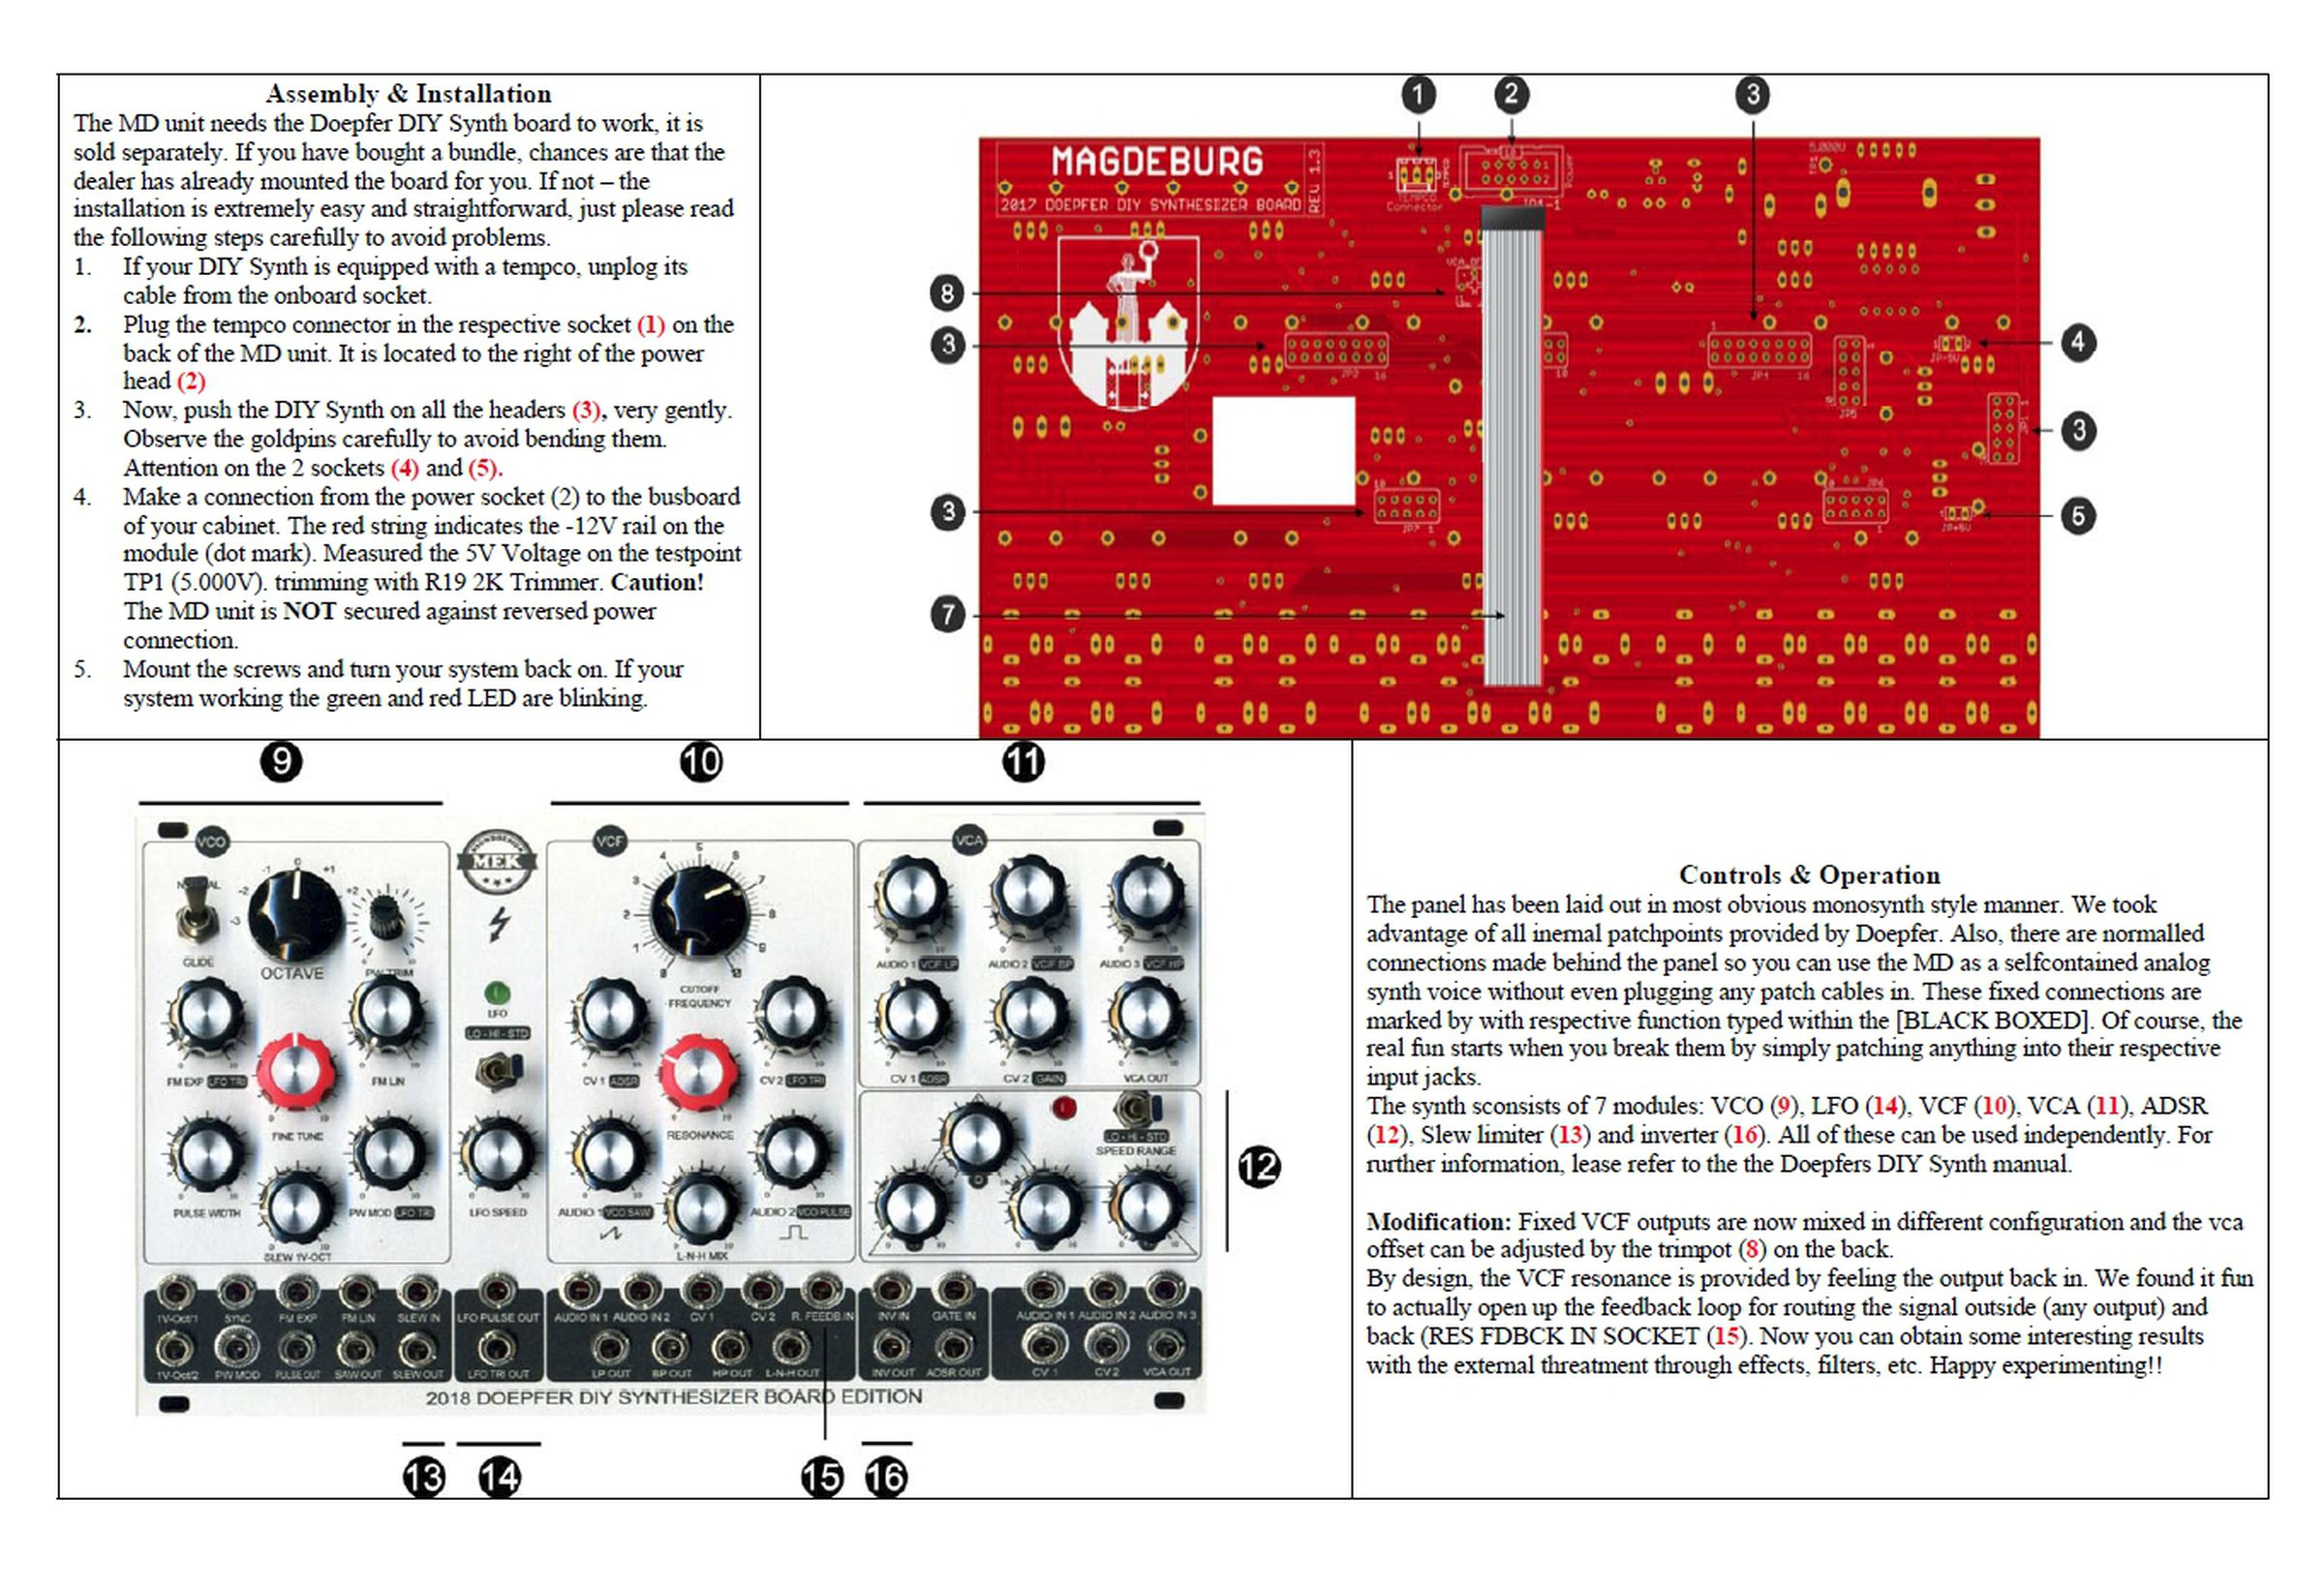 Electronic Media Wiring Enclosure Block Diagram Explanation Structured Uk Doepfer Diy Synth Edition Quot Magdeburg Bundle From On Tindie Smallest